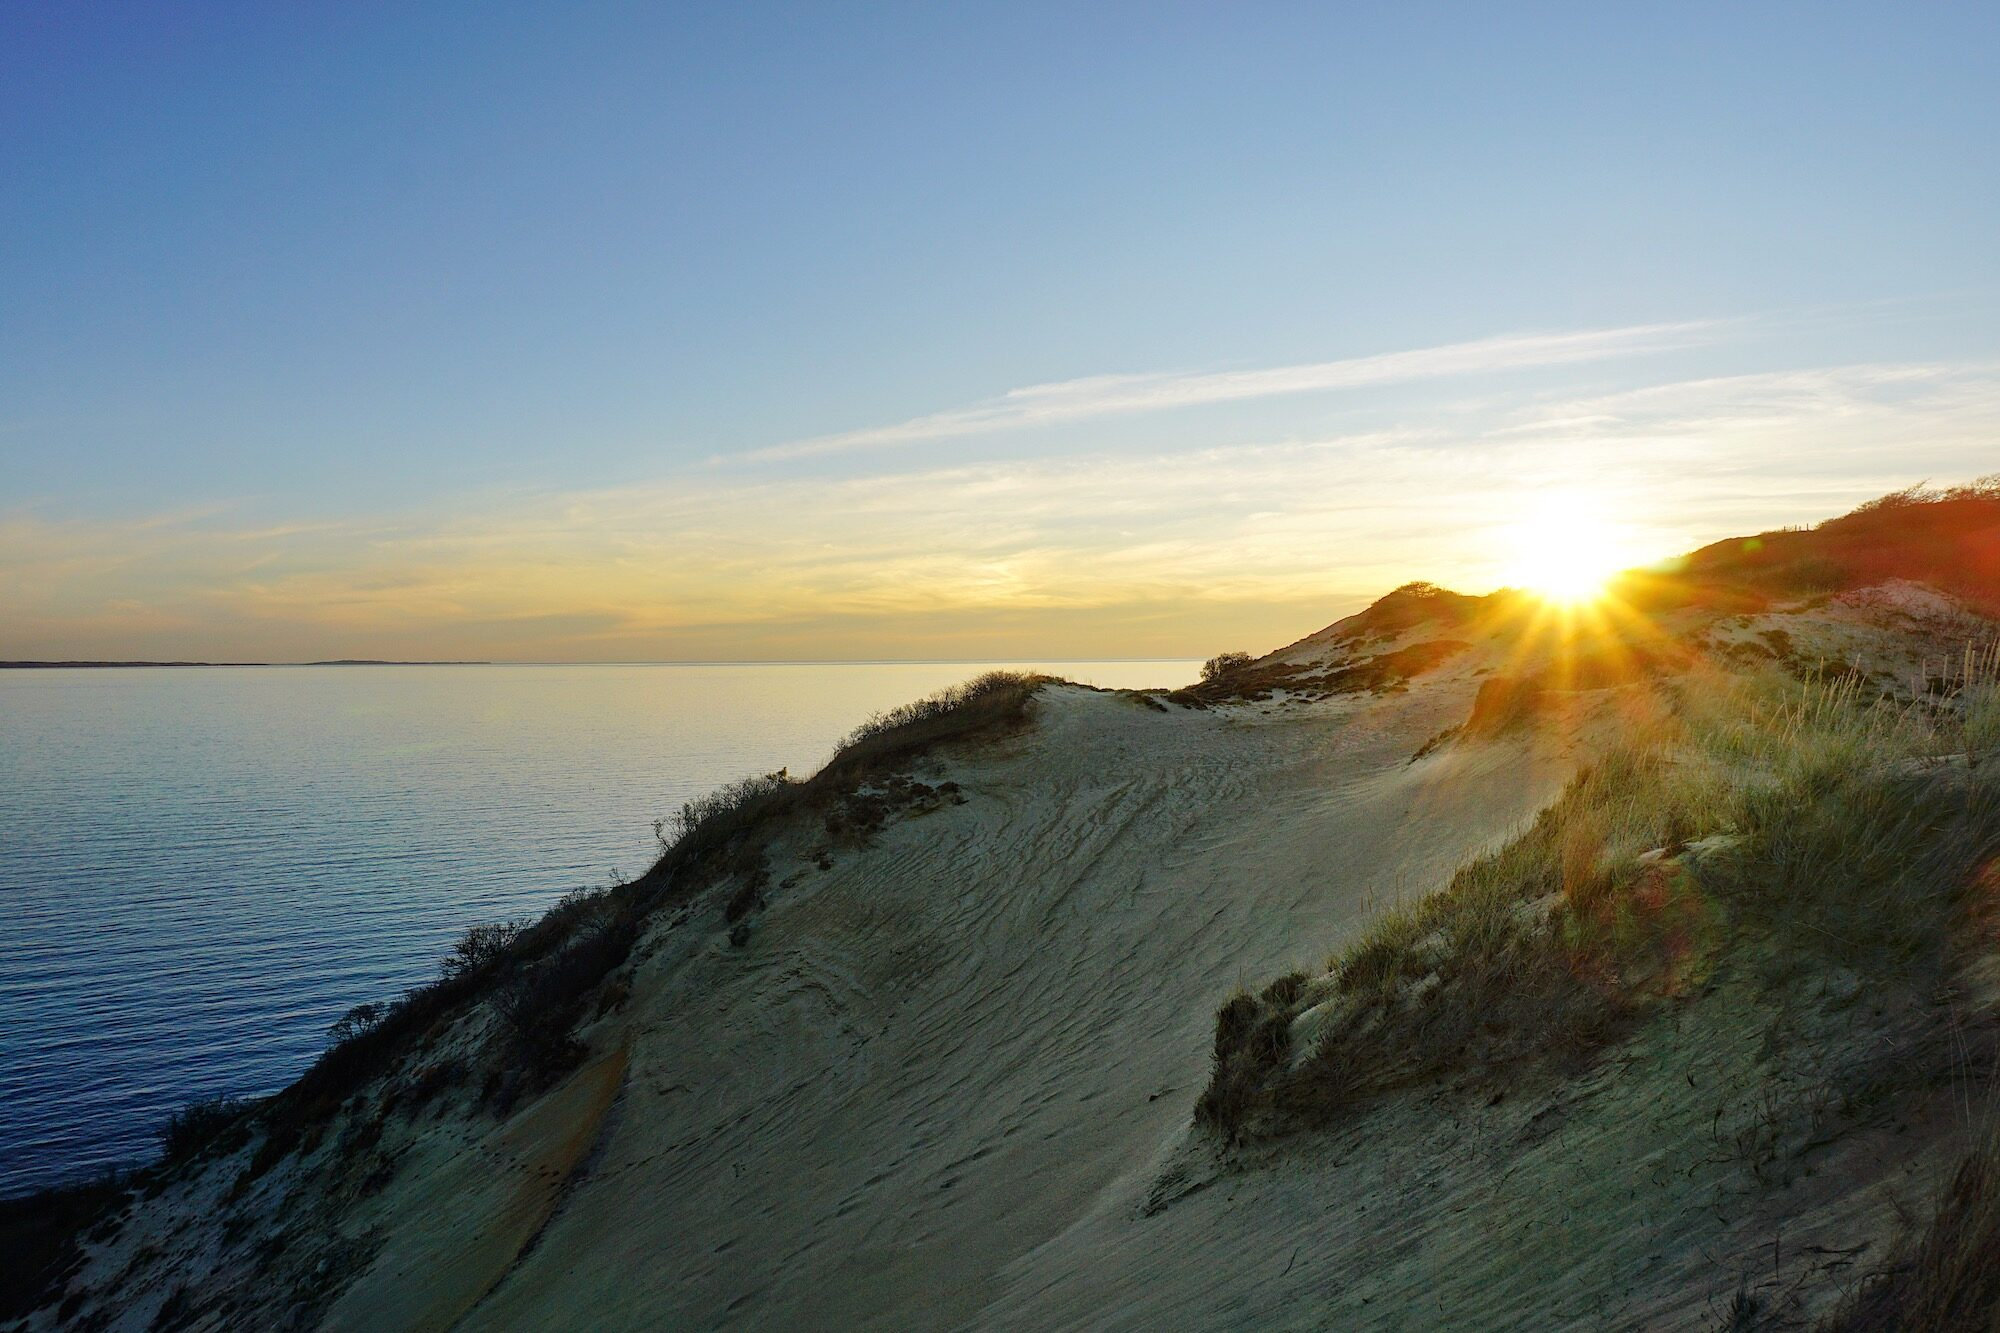 Sunrise over a coastal bank in Menemsha Hills, on Martha's Vineyard, with a view of the ocean